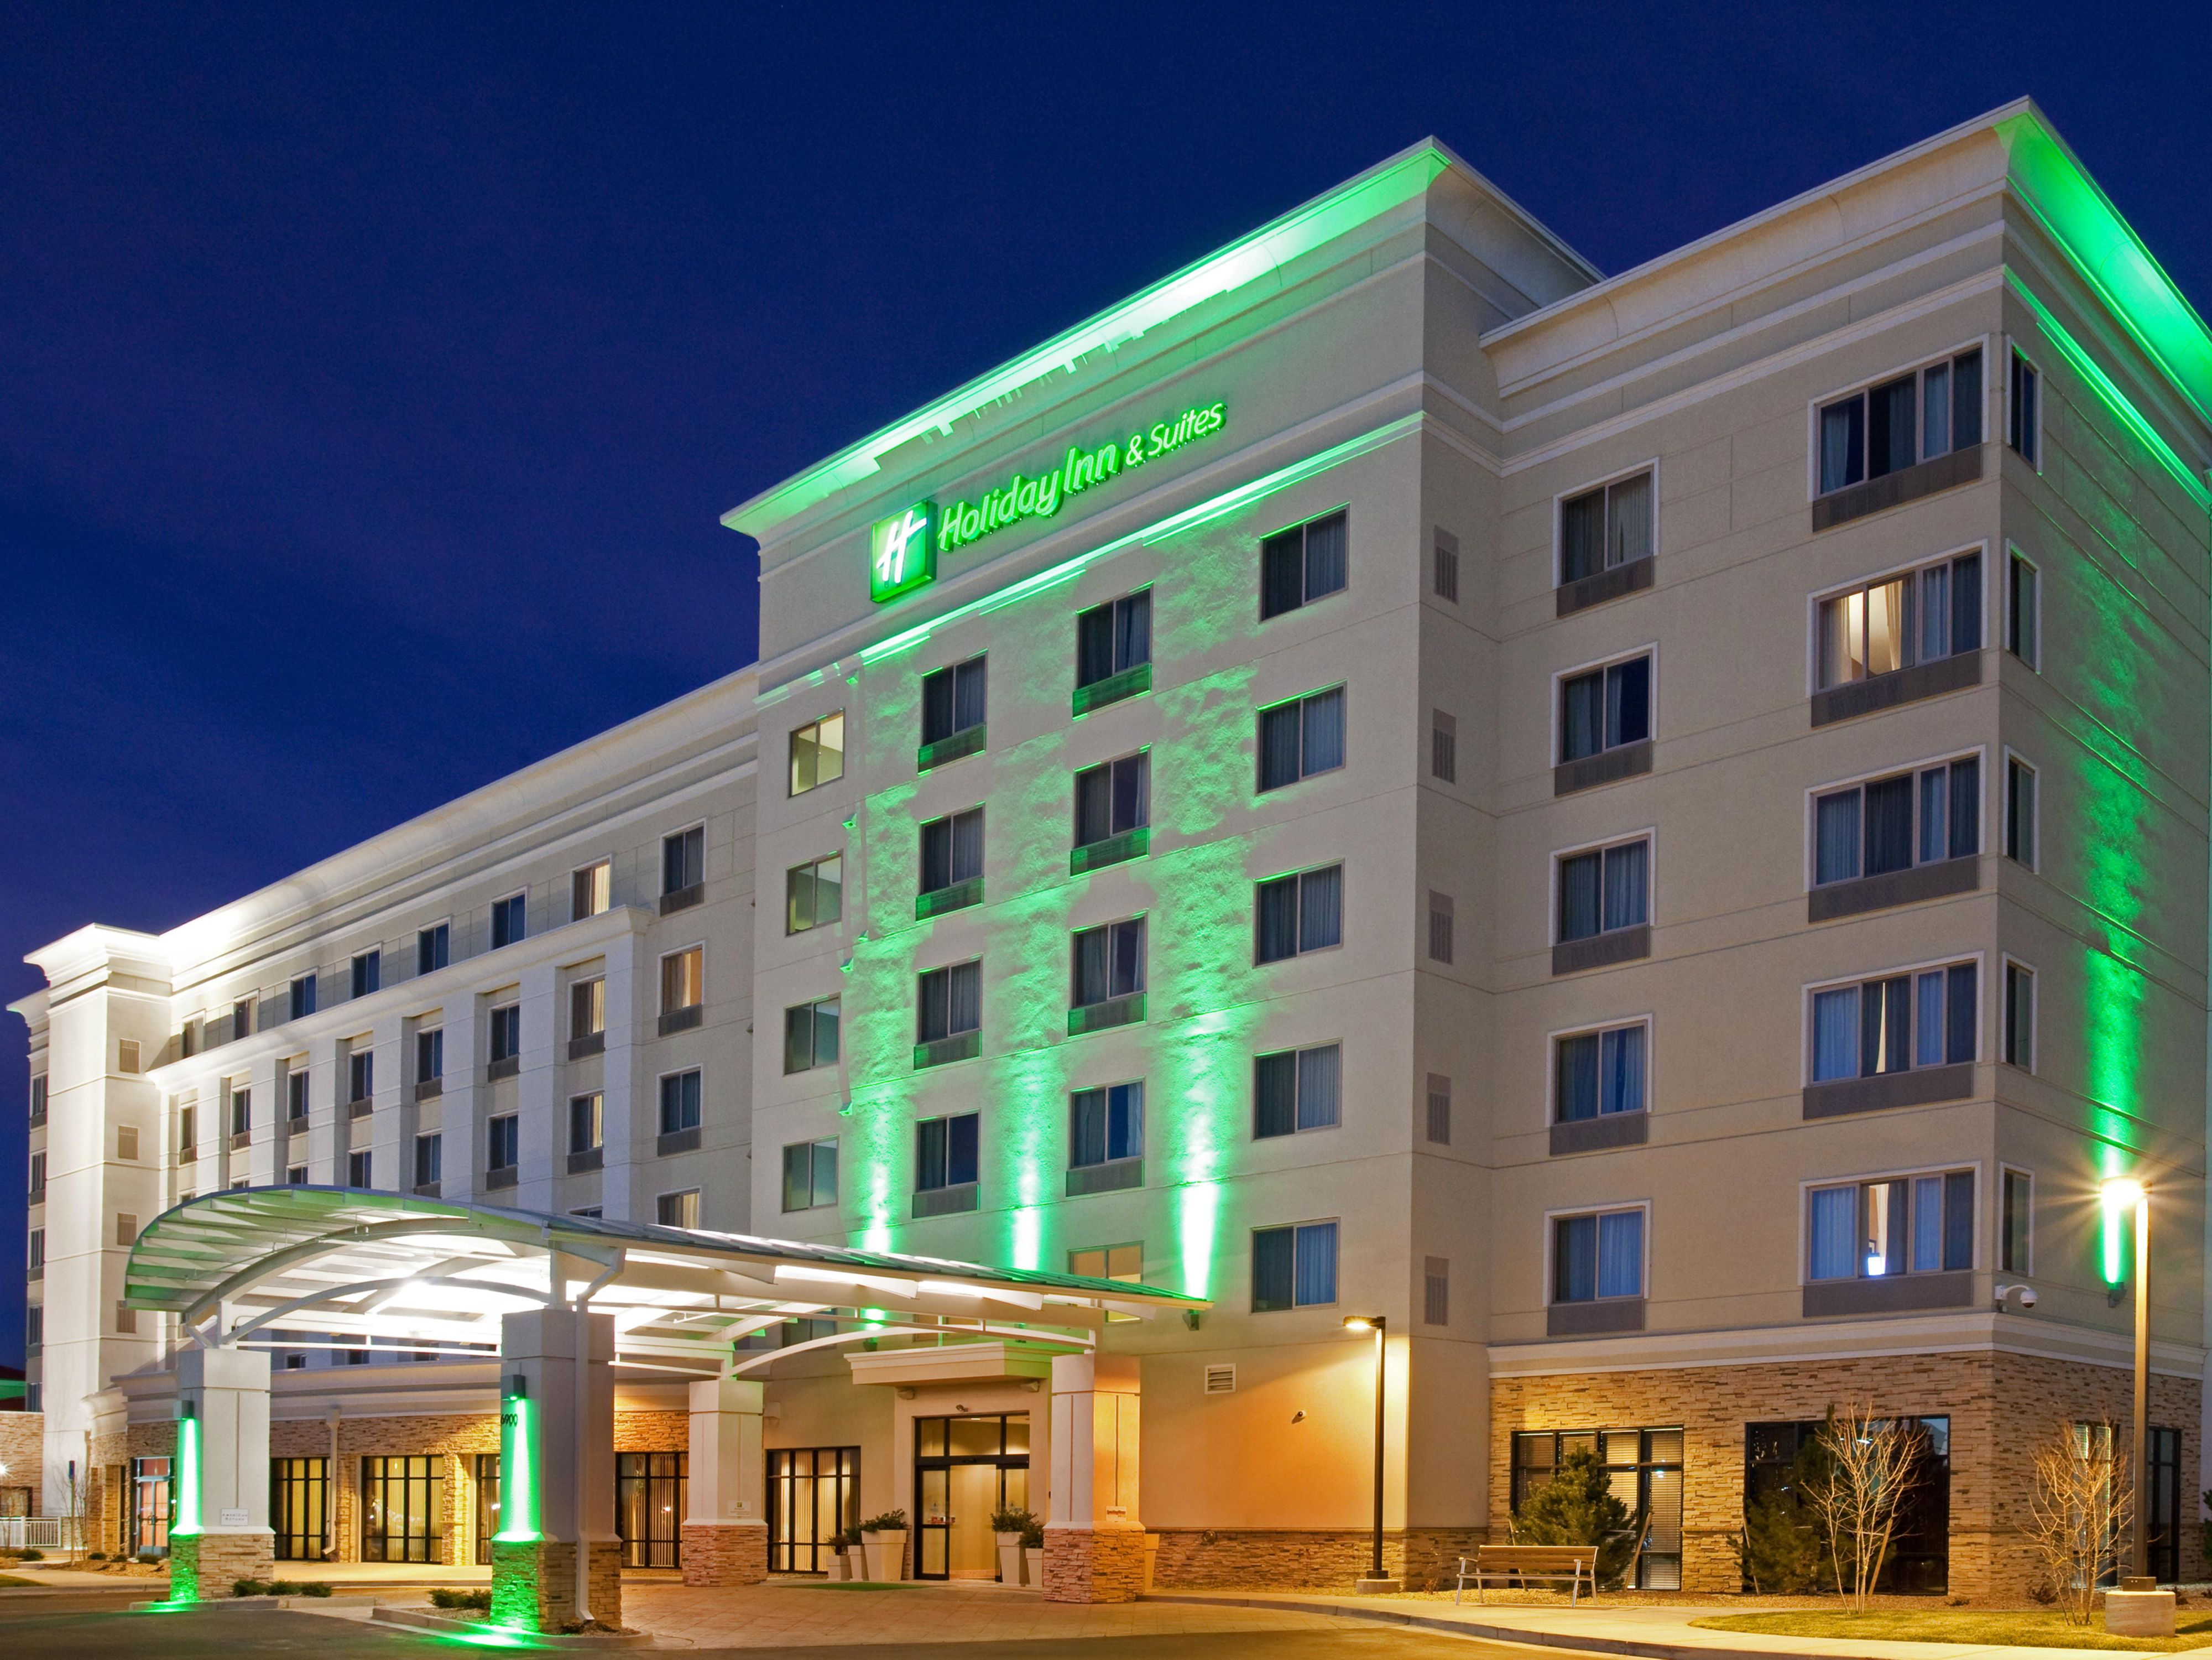 Welcome To The Holiday Inn & Suites- Denver Airport!